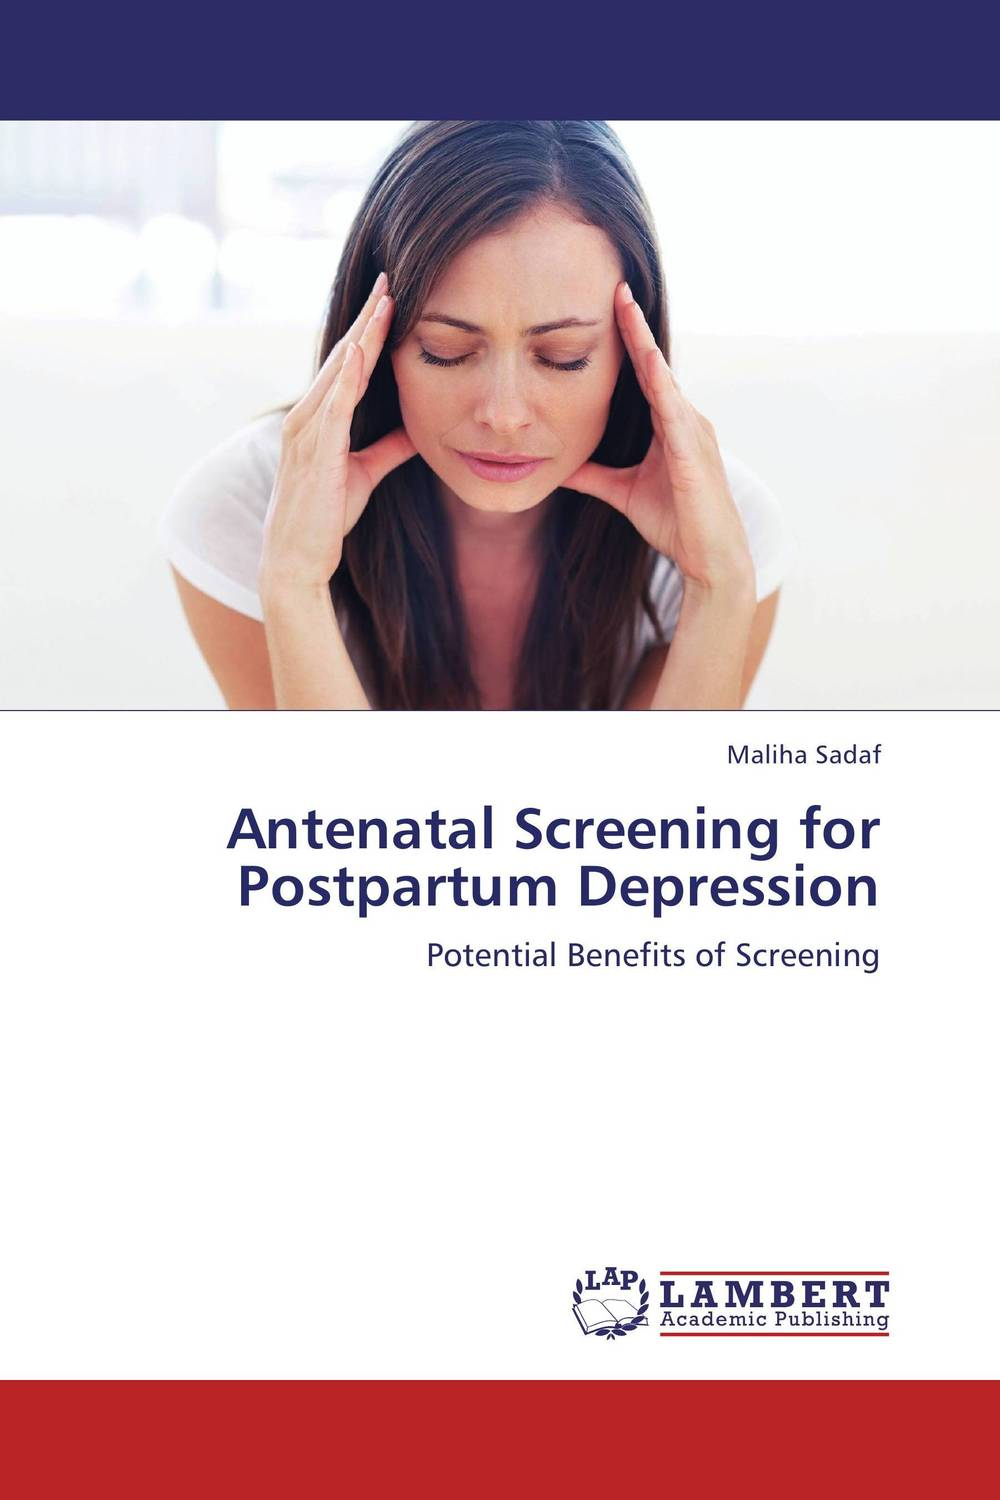 Antenatal Screening for Postpartum Depression prostate screening motivating factors and barriers